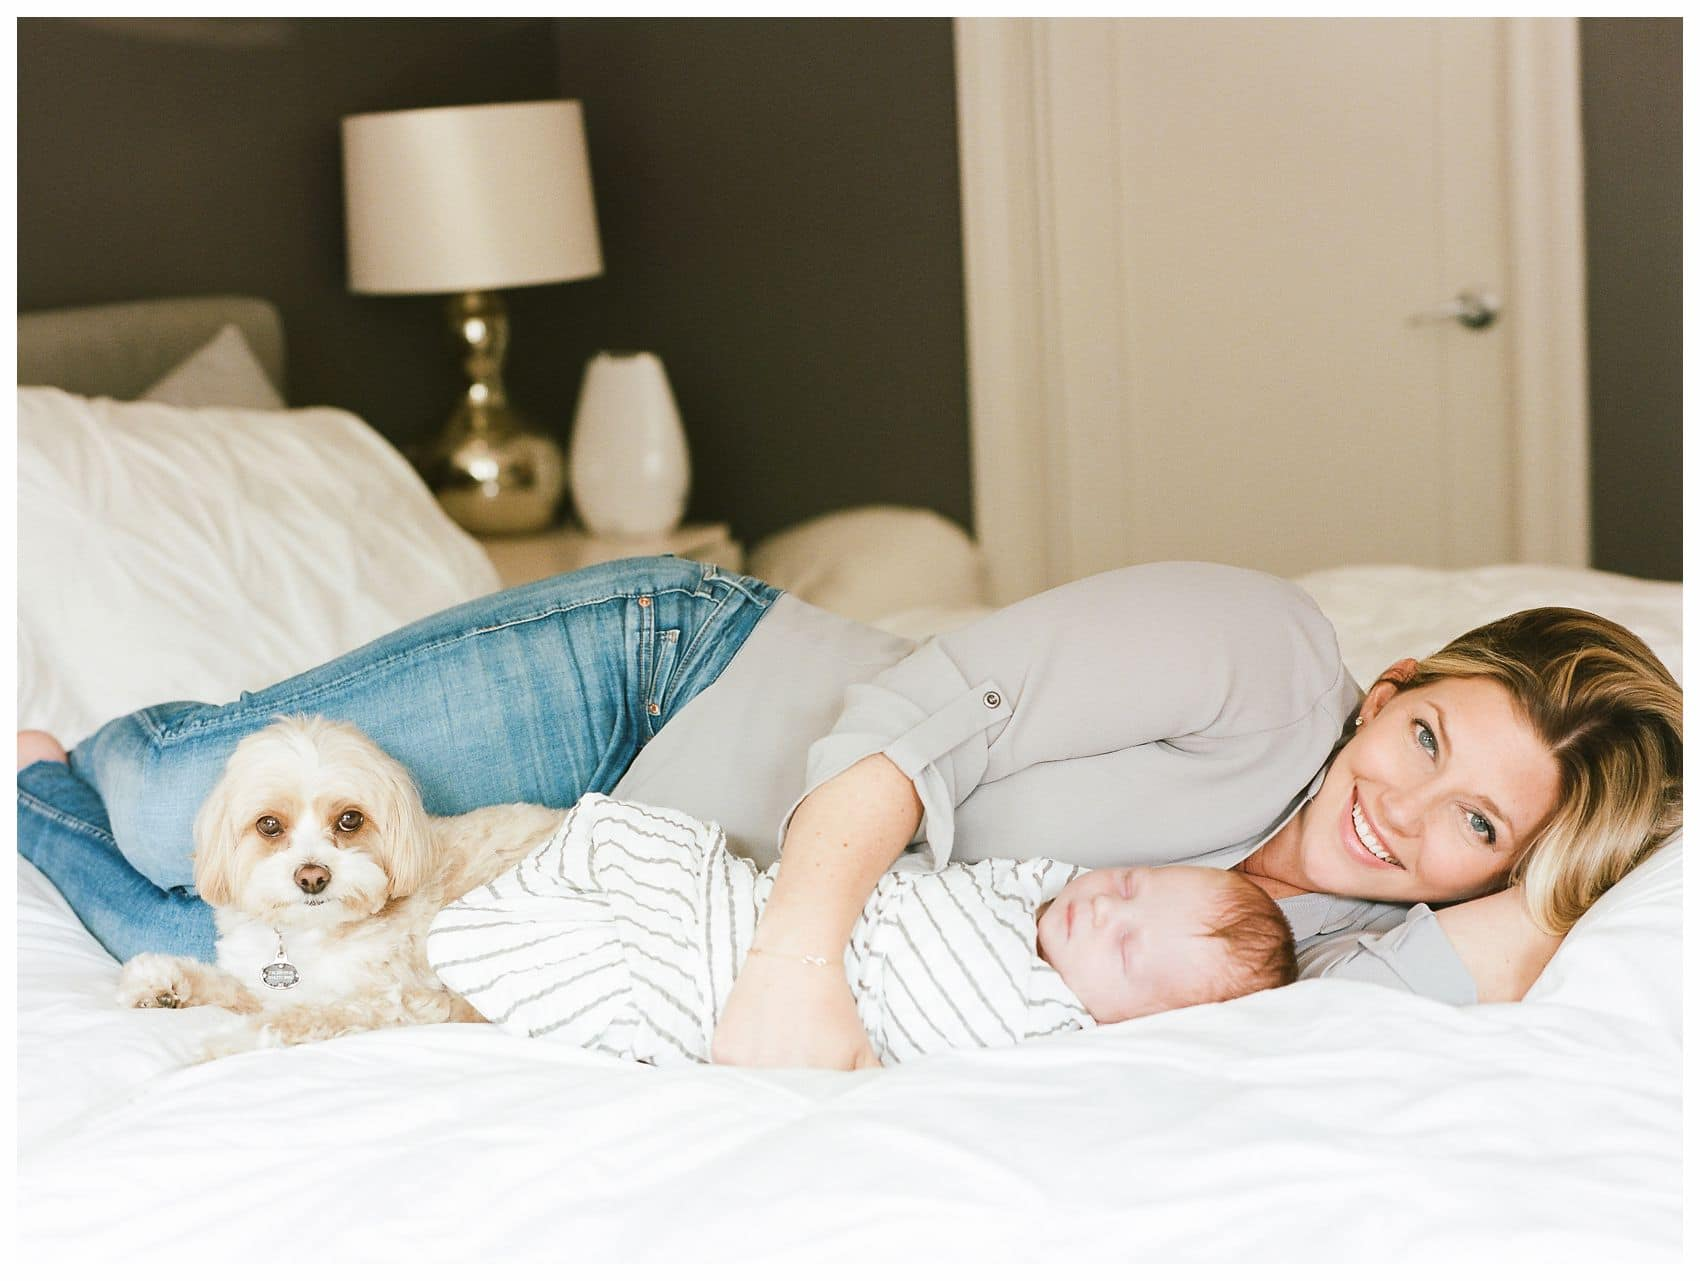 Miriam Dubinsky shares on how to choose the best newborn photographer with lifestyle photo of mom snuggling with baby boy and family dog on bed